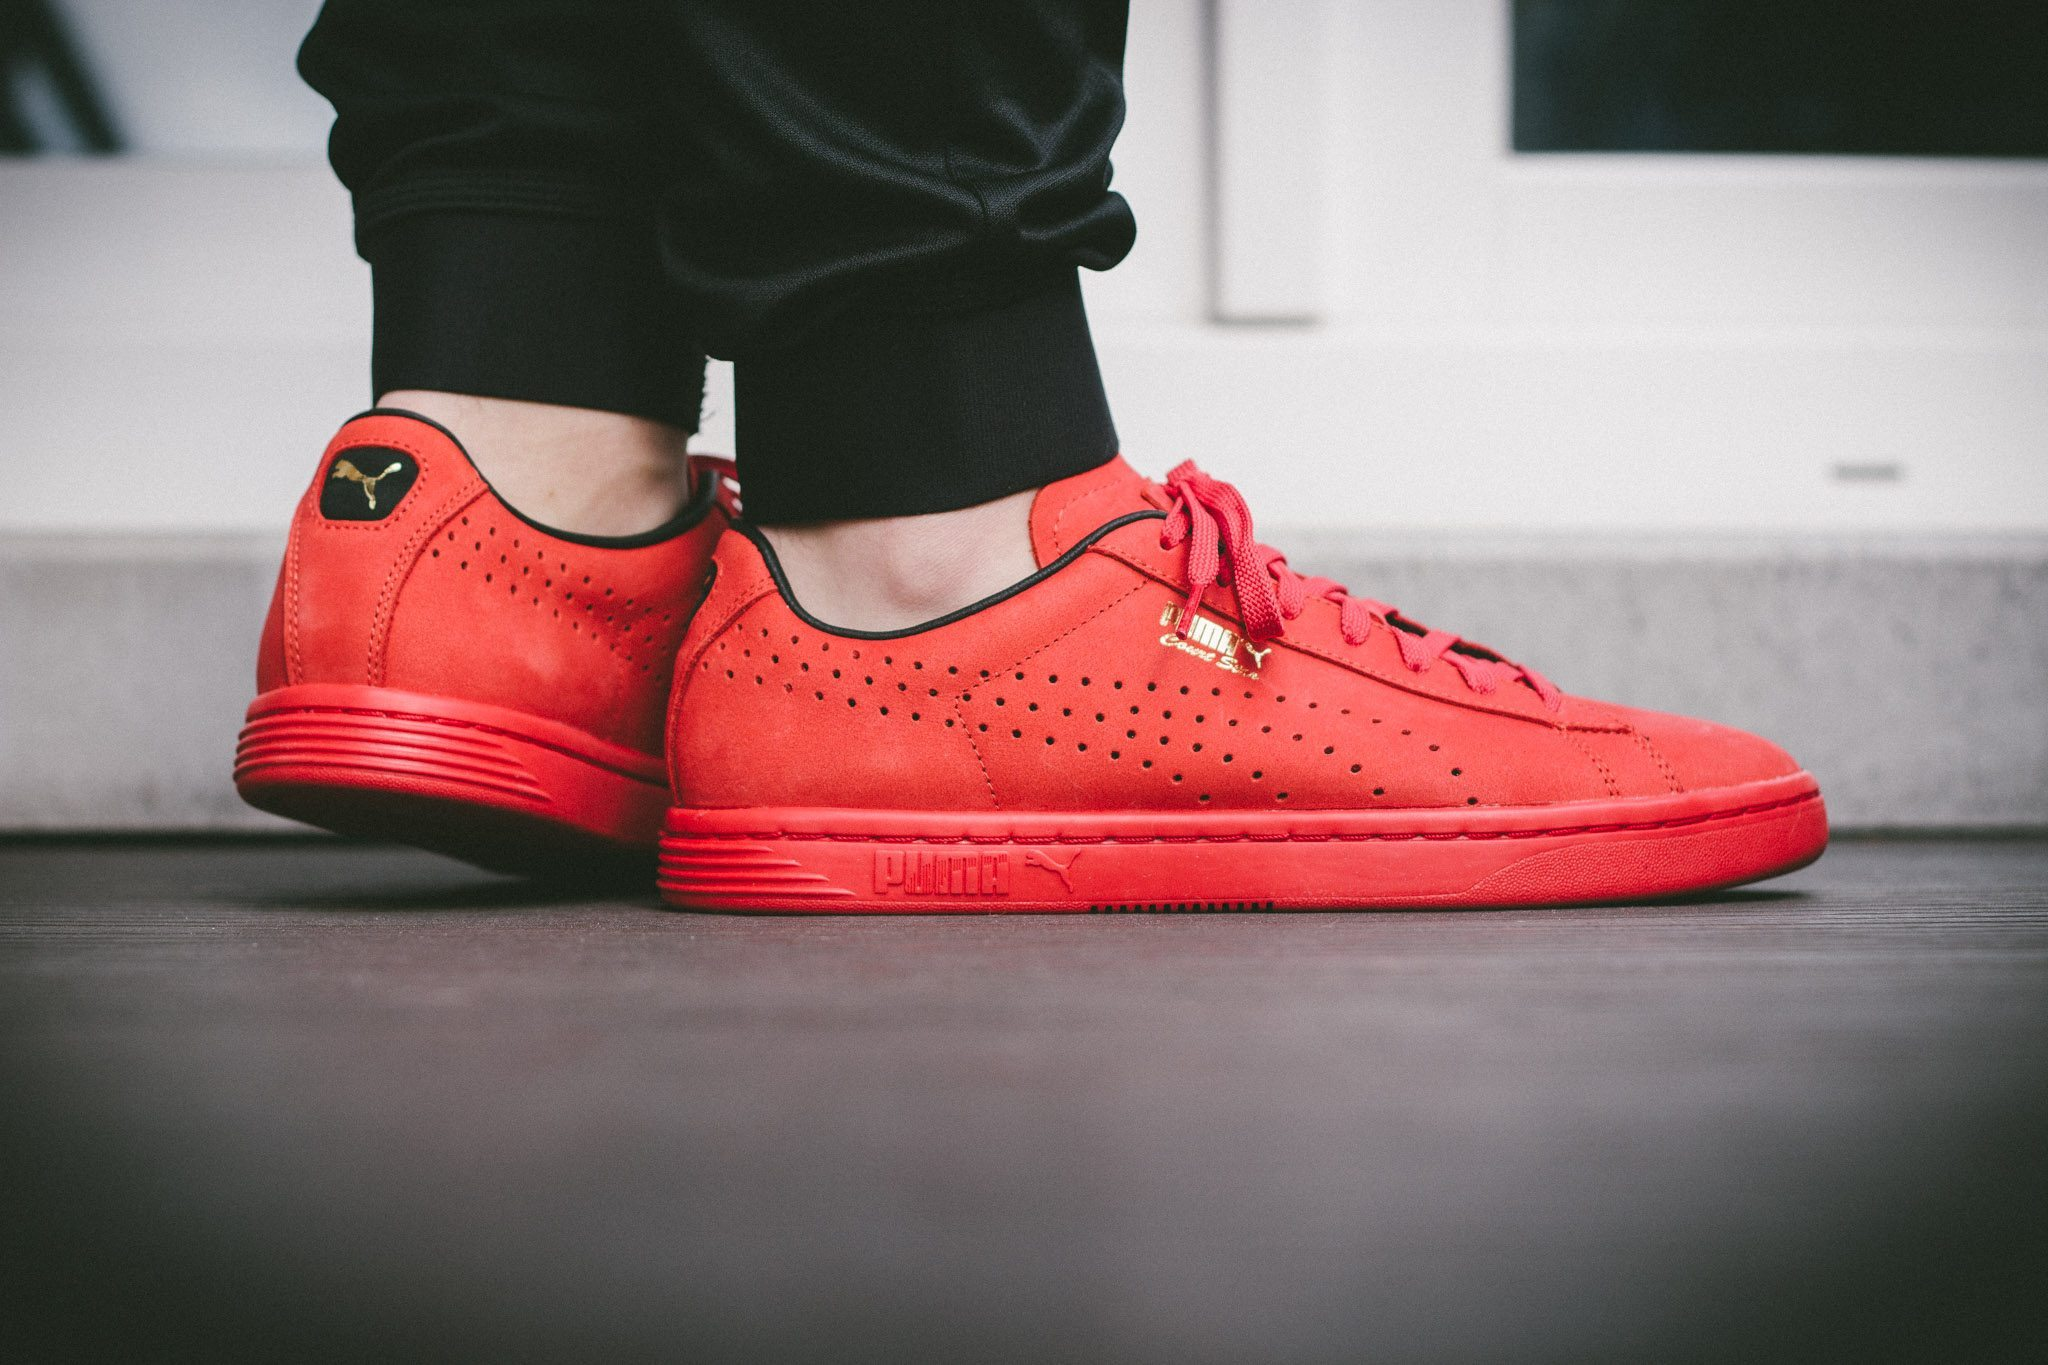 Puma Court Star OG High Risk All Red 12